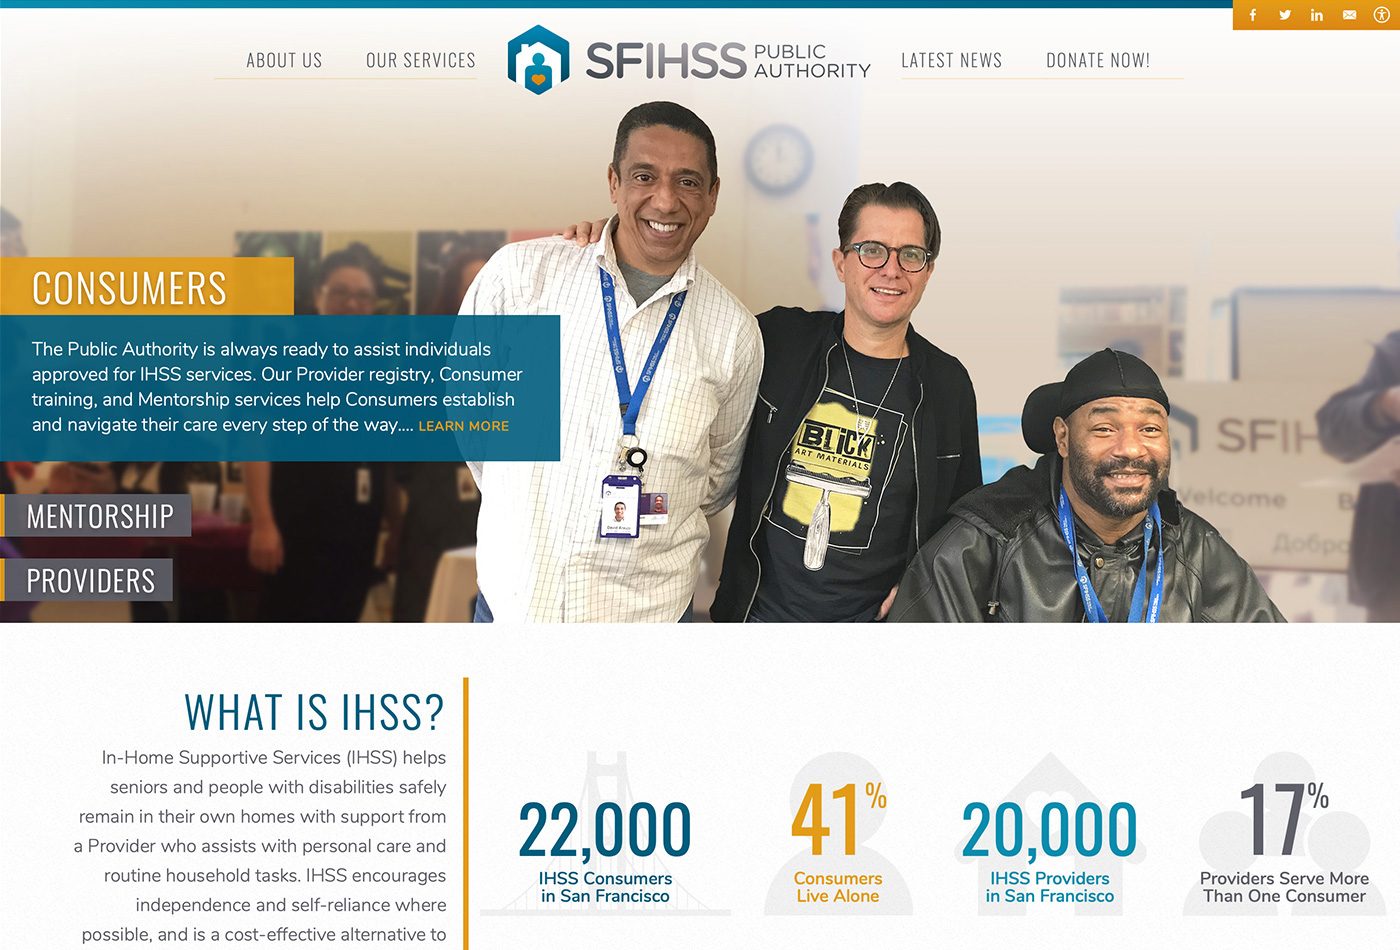 Screenshot of the San Francisco IHSS Public Authority website.